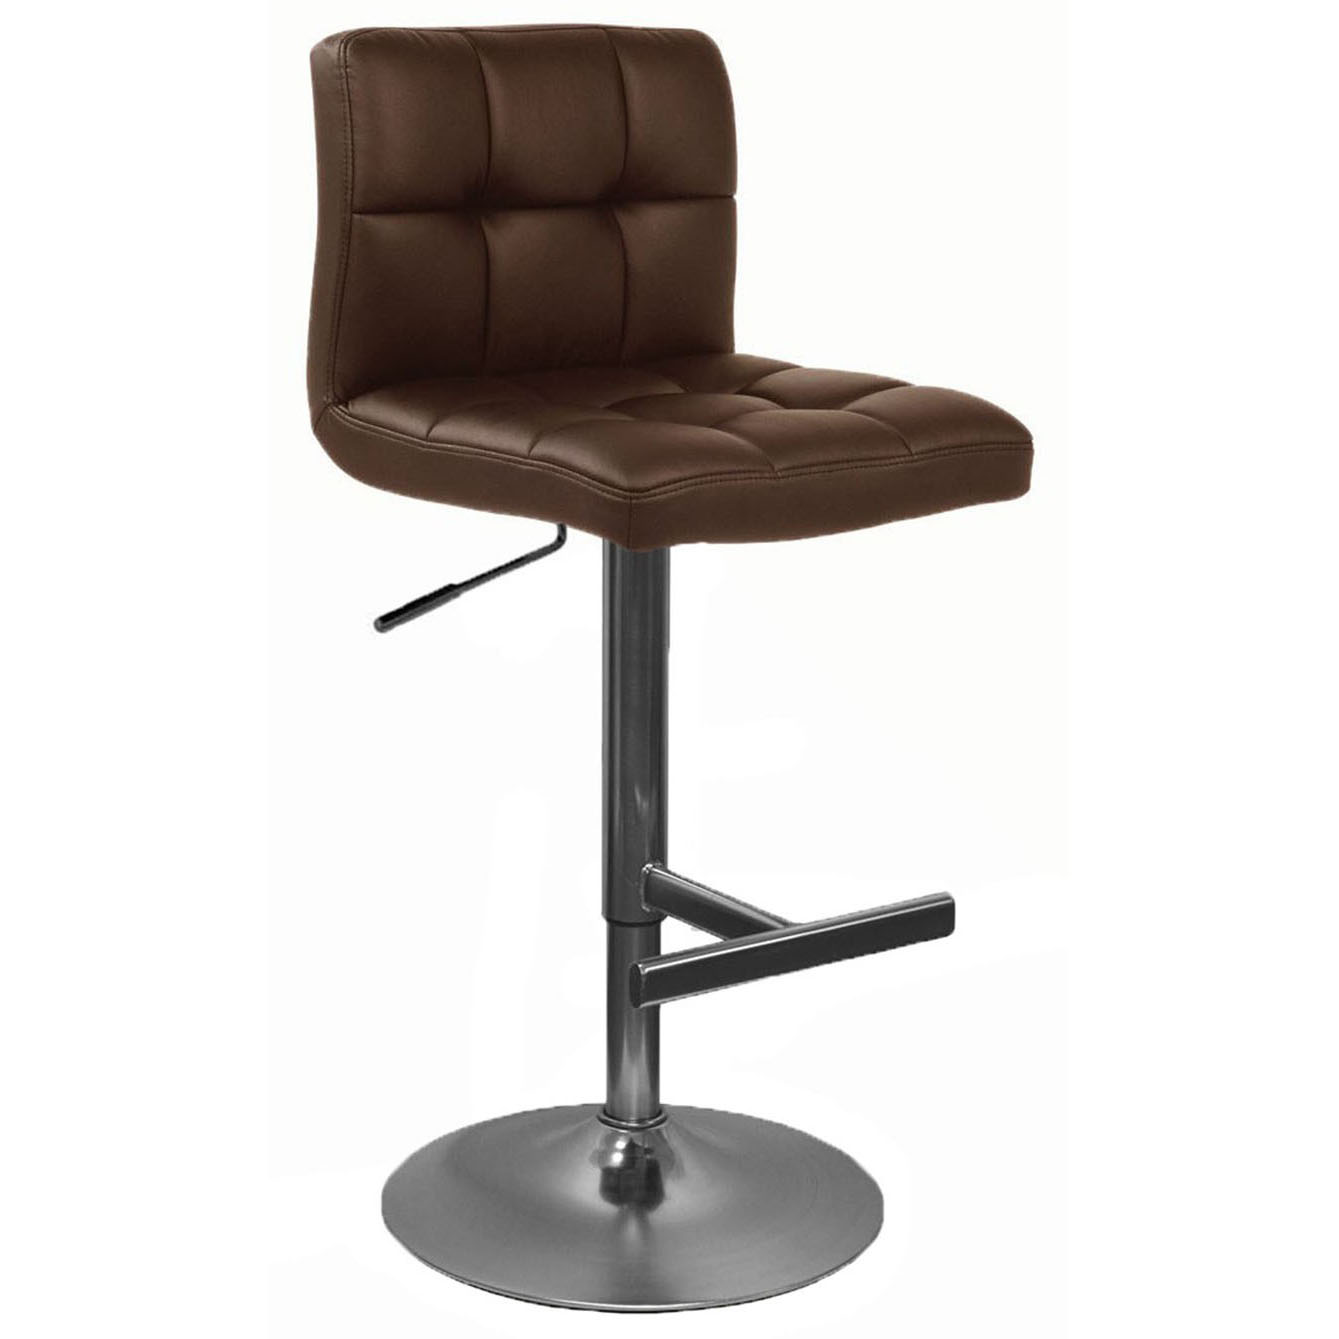 Allegro Brushed Bar Stool - Brown